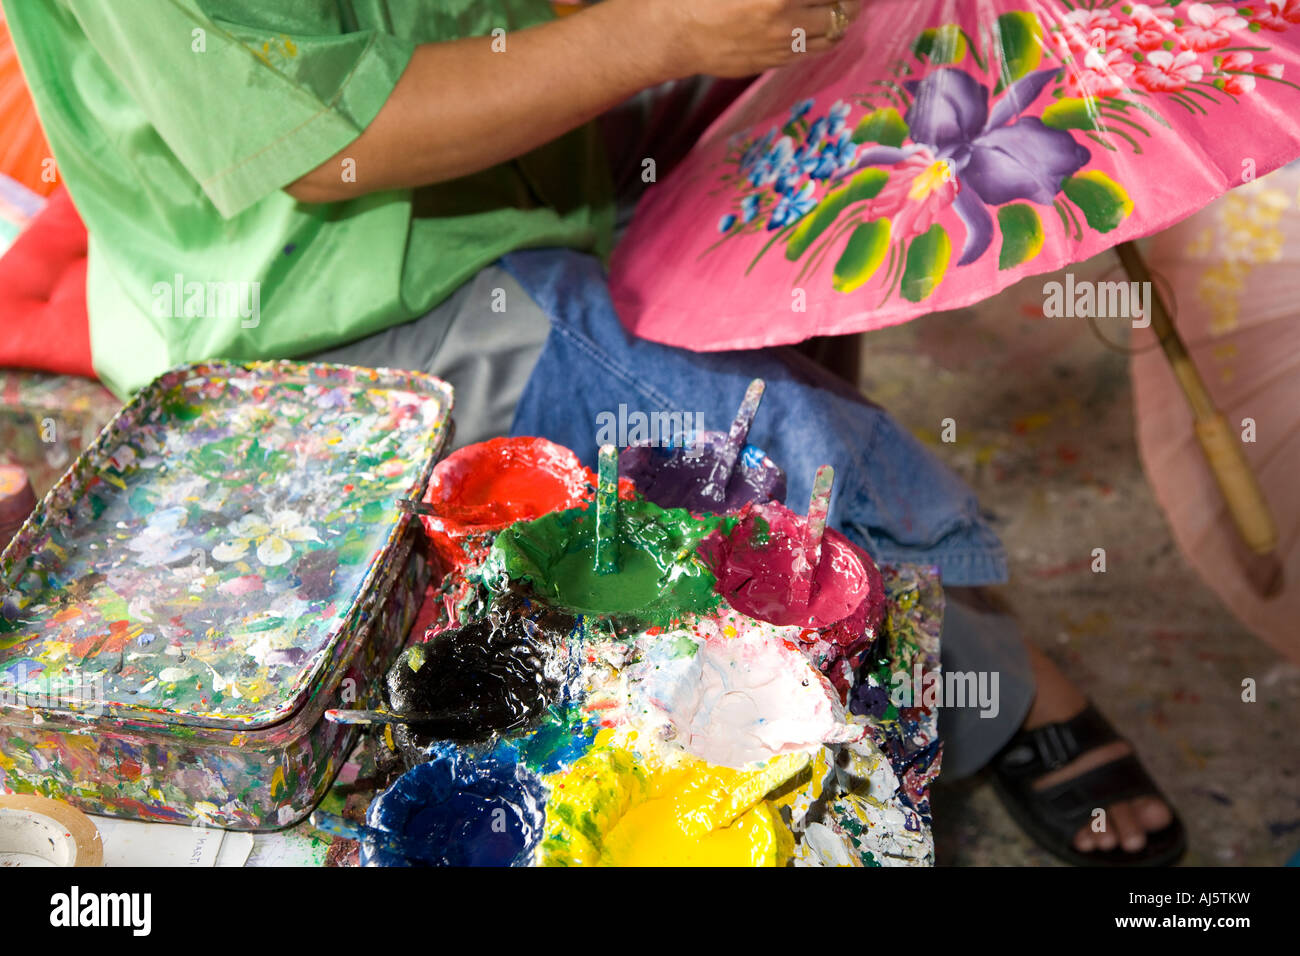 Asian crafts business at Borsang, or Bo sang, or Bor sang. Woman with Umbrella and parasol craft making centre, Stock Photo